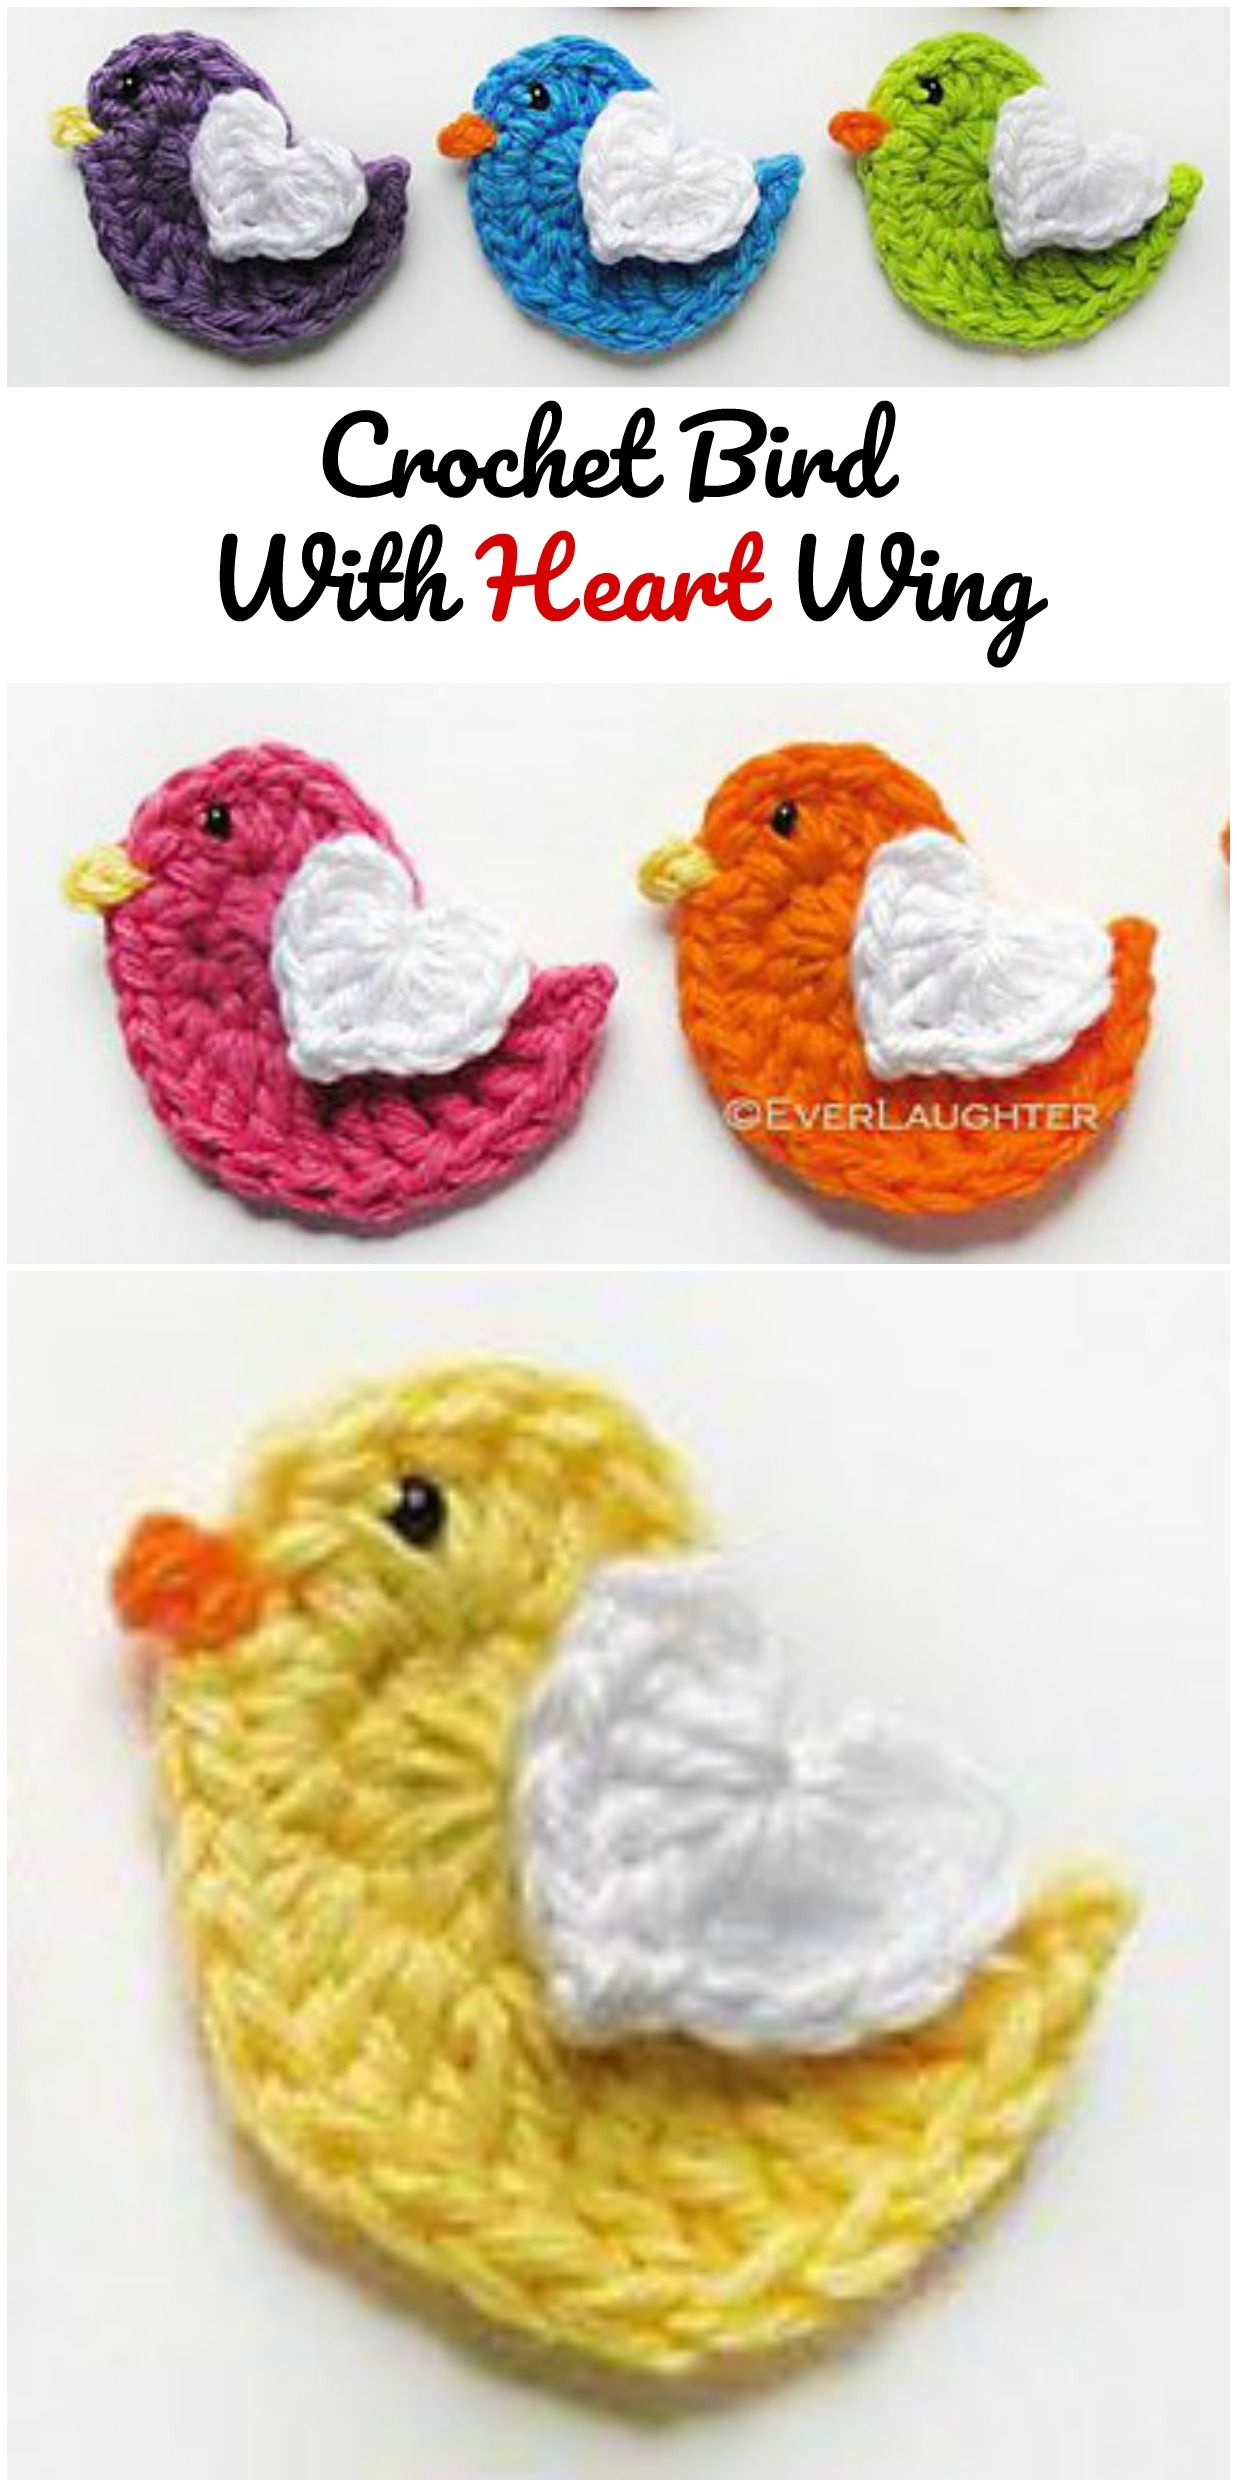 Crochet Lovely Bird Applique | Tejido crochet | Pinterest | Tejido ...